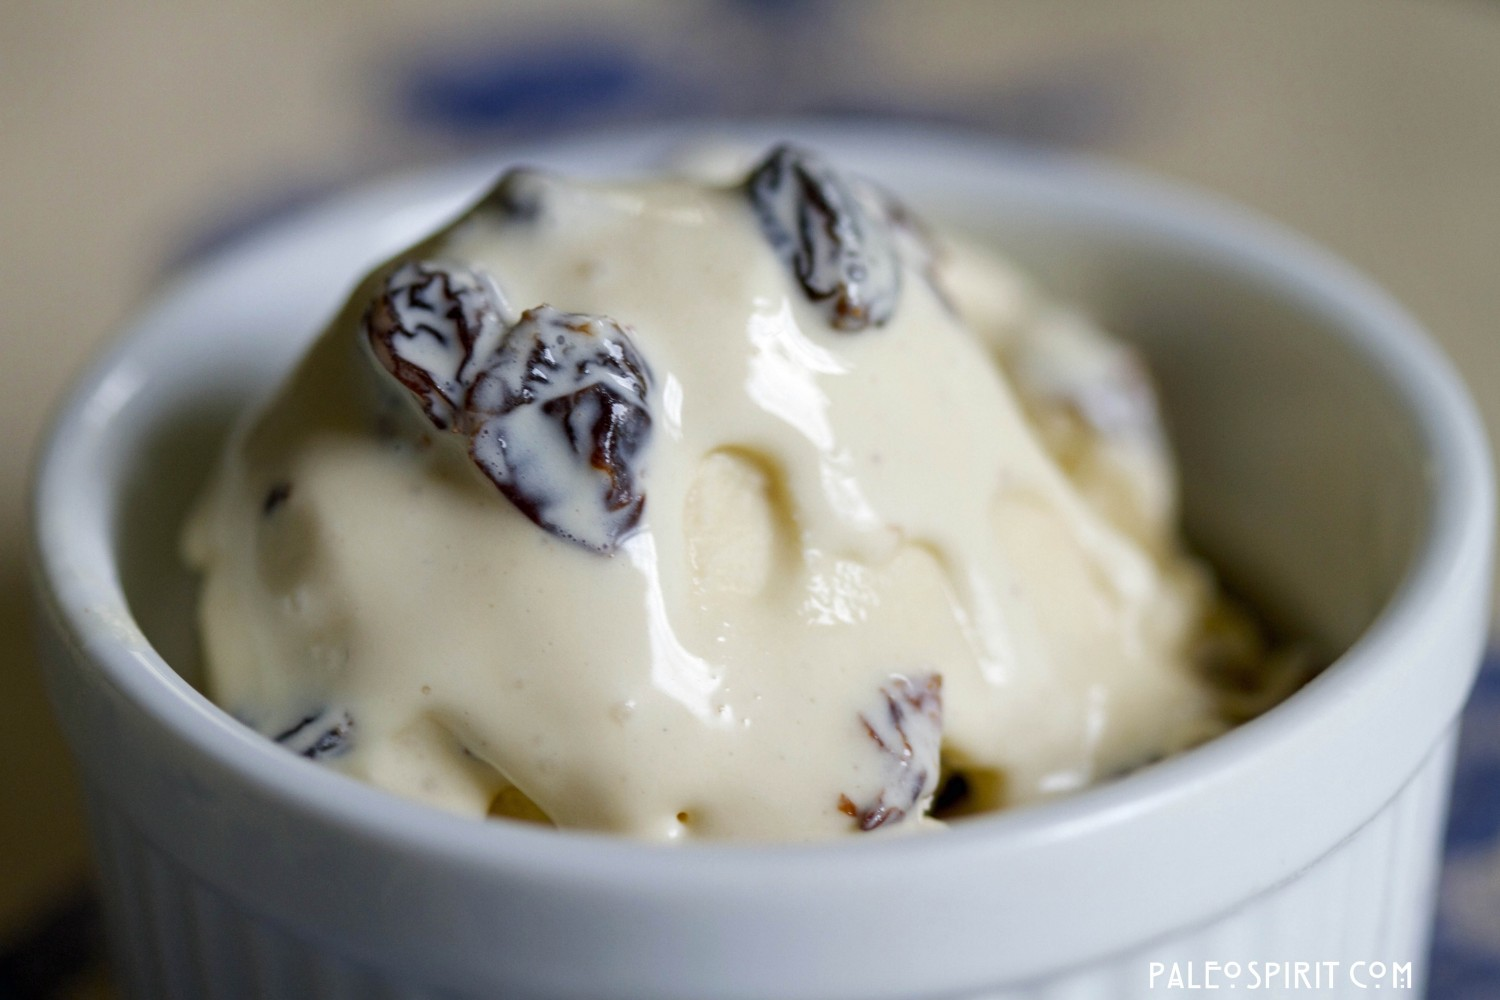 Rum Raisin Ice Cream (Primal)